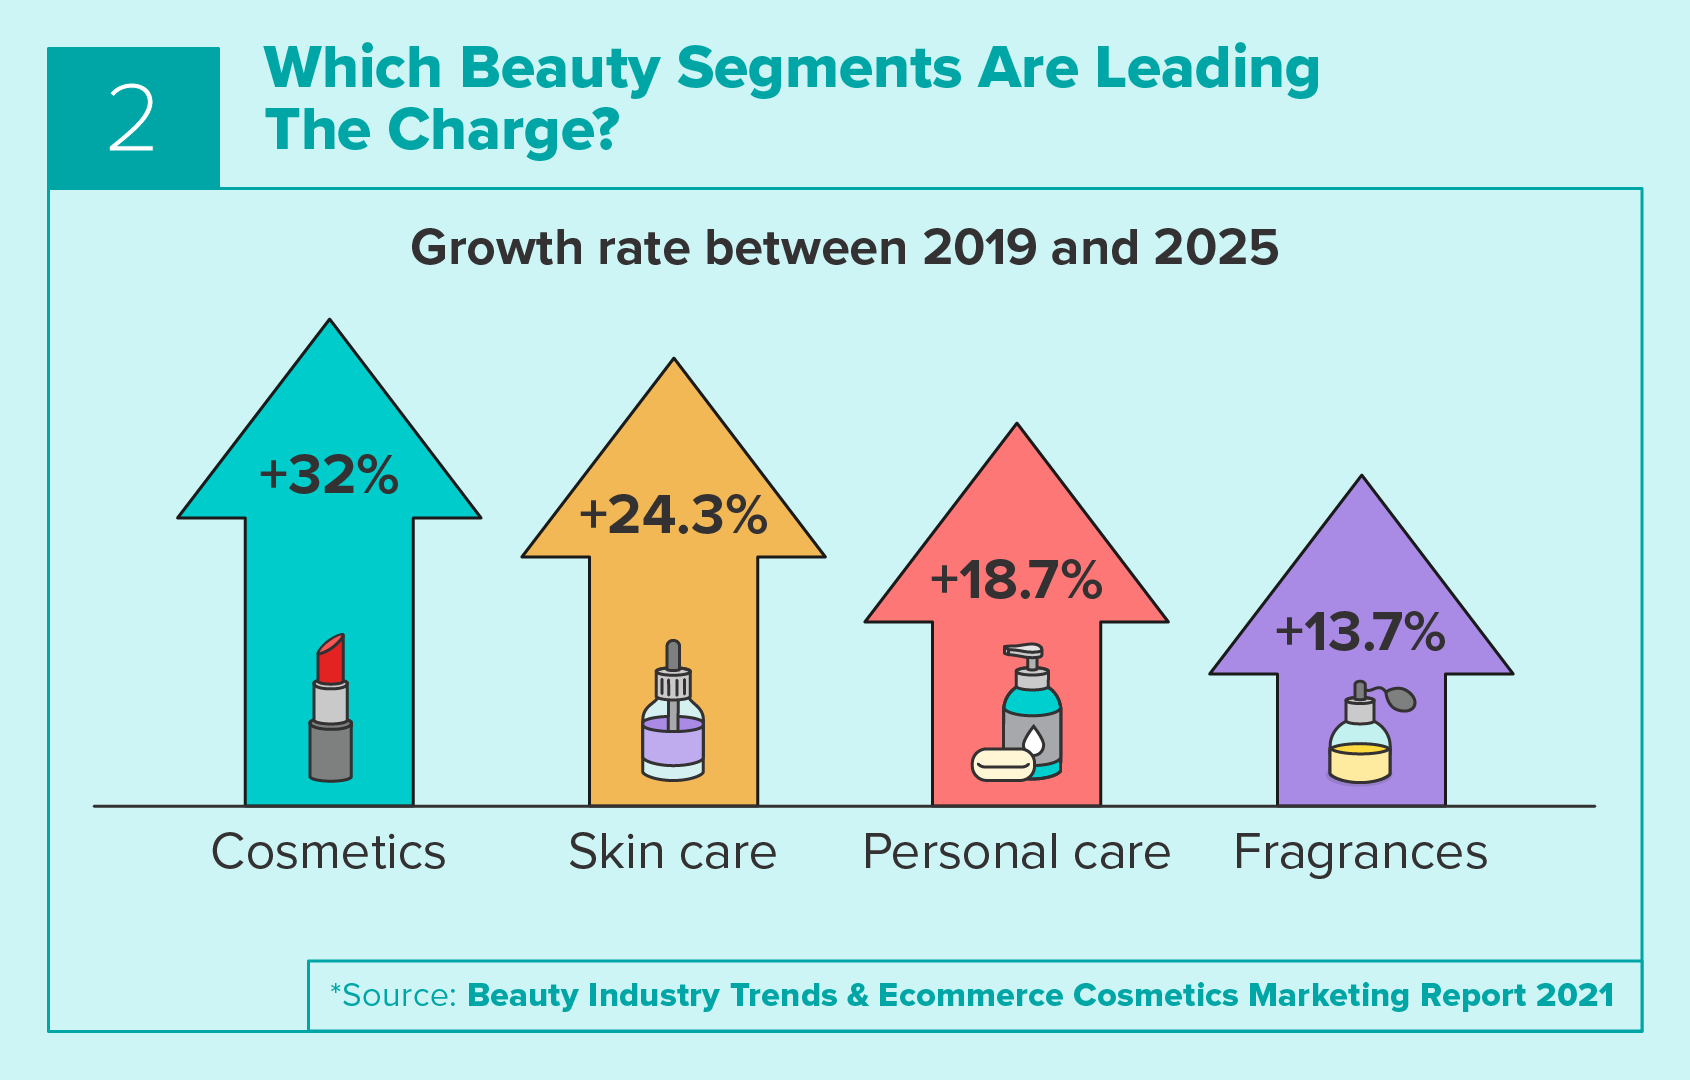 Beauty Segments Leading the Charge